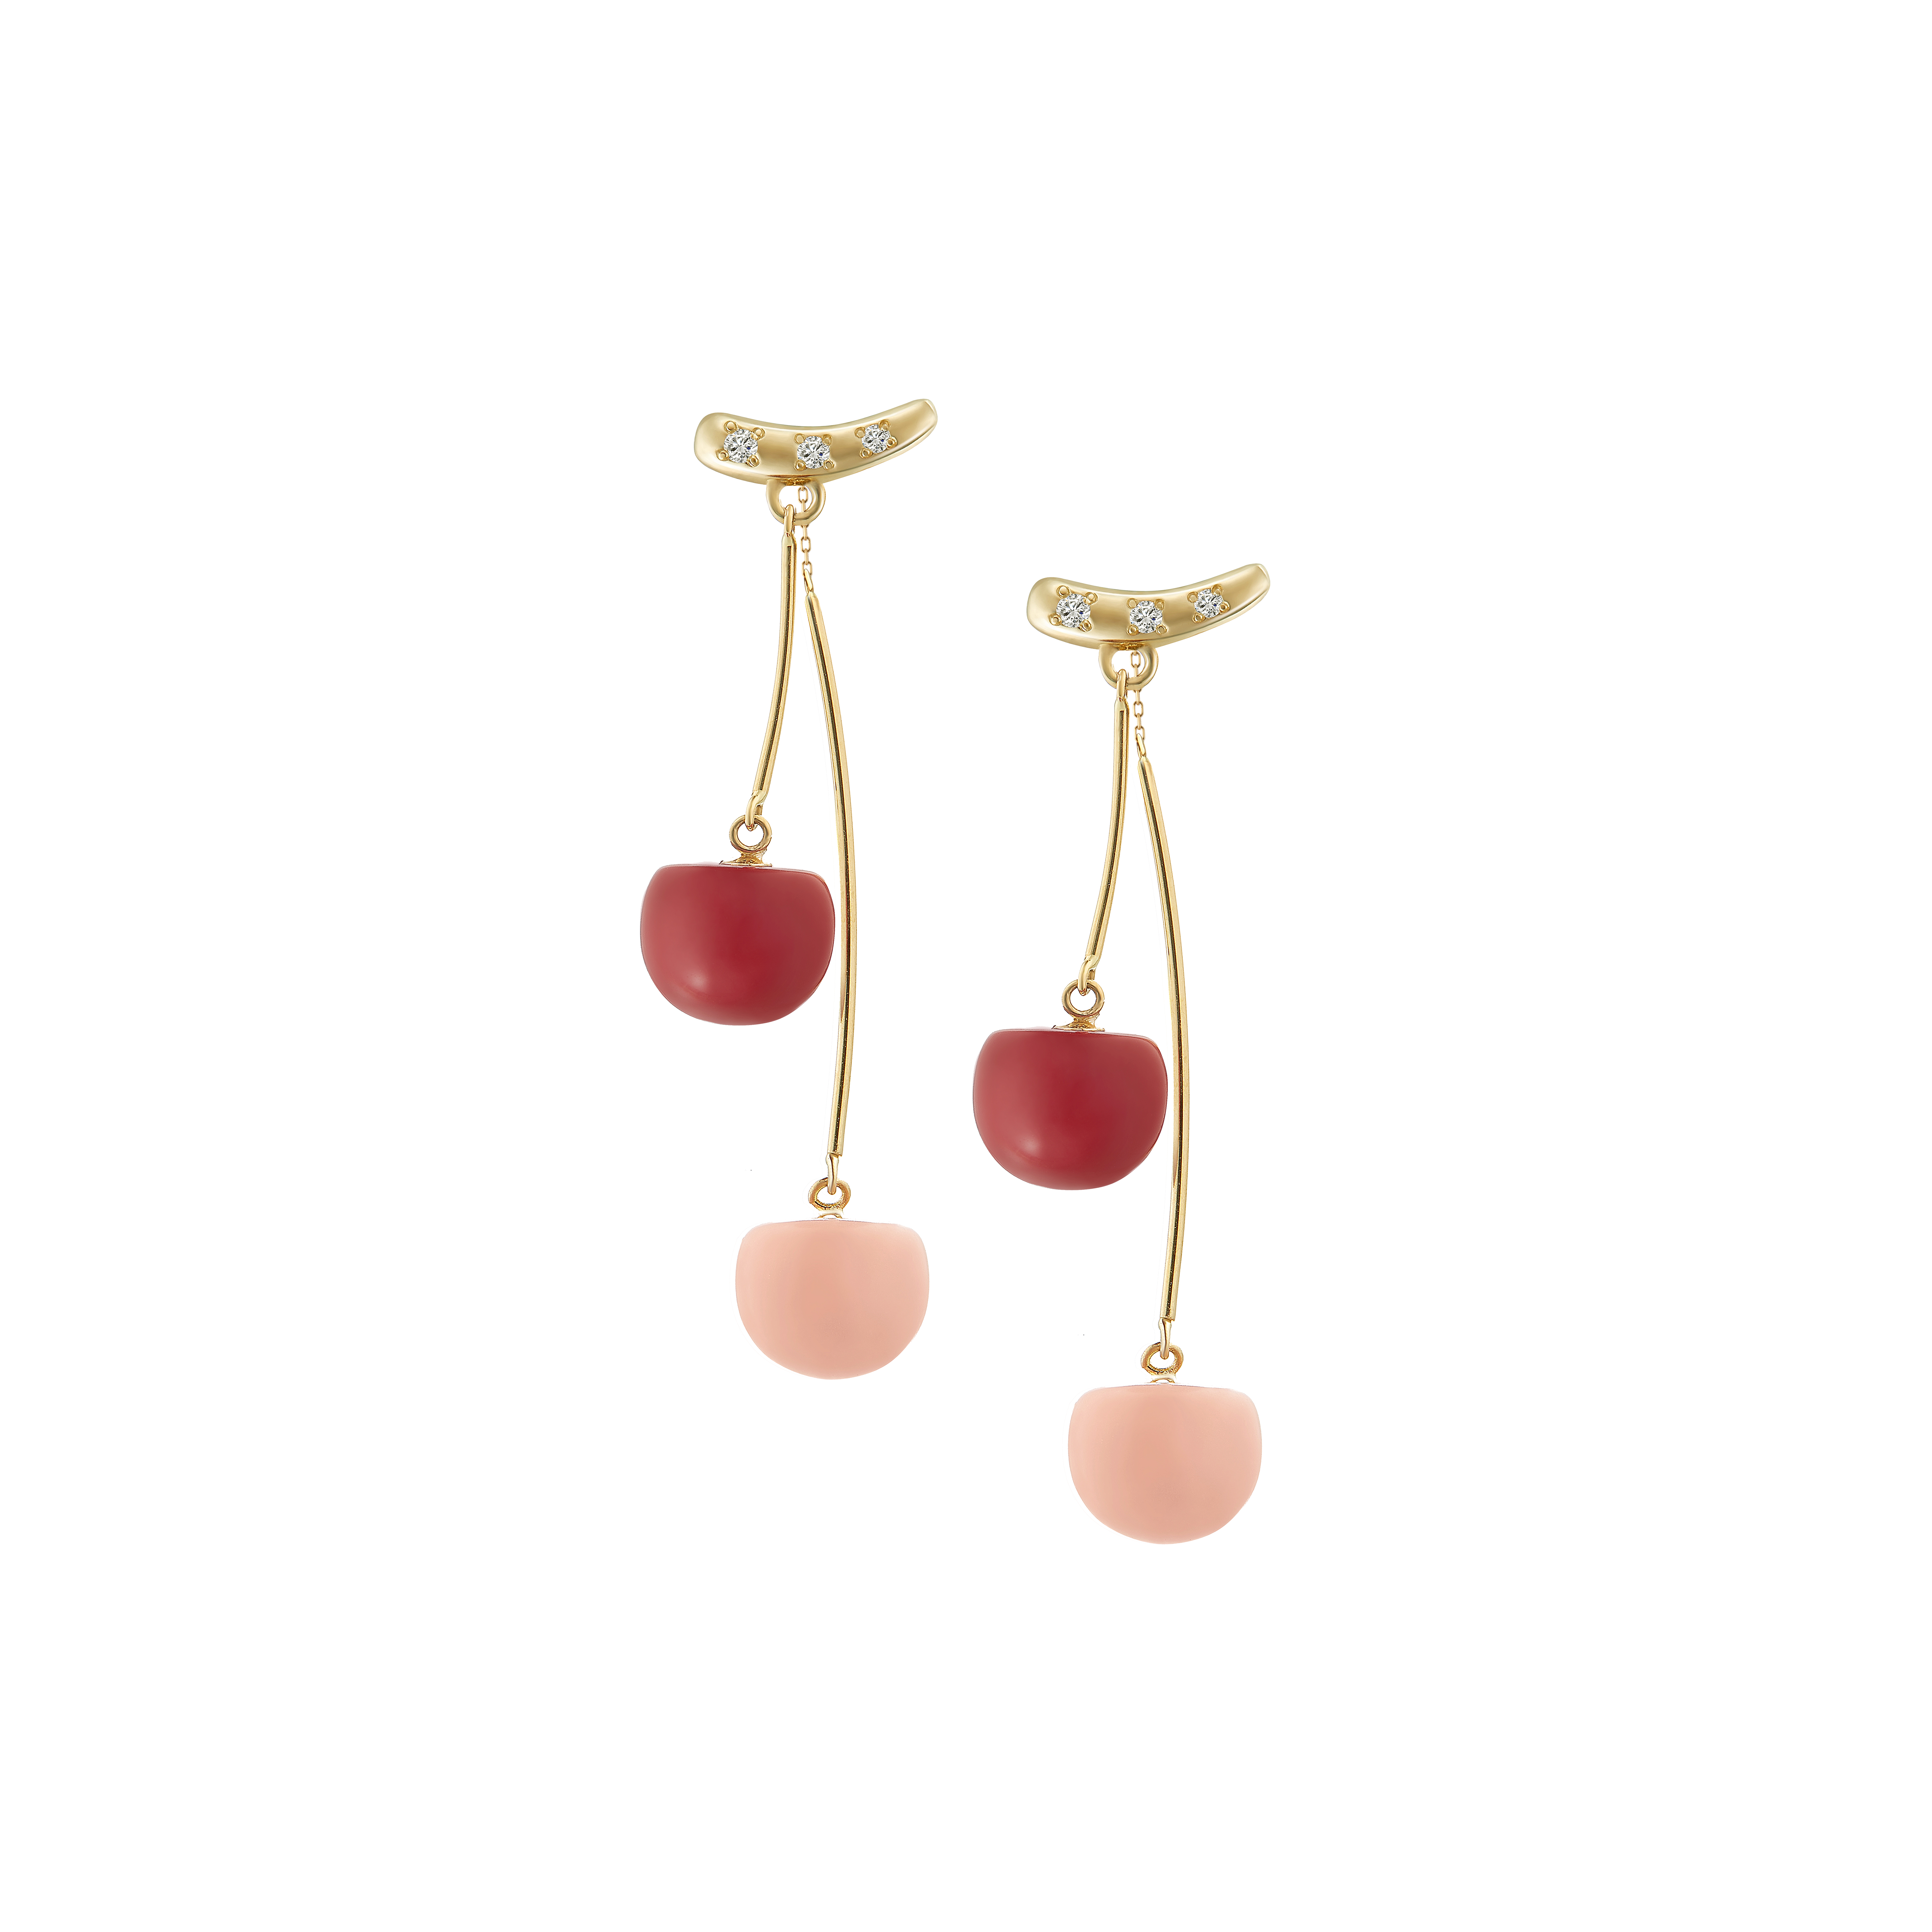 Coral Fruit Collection 10K黄金耳环-Cherry 6399